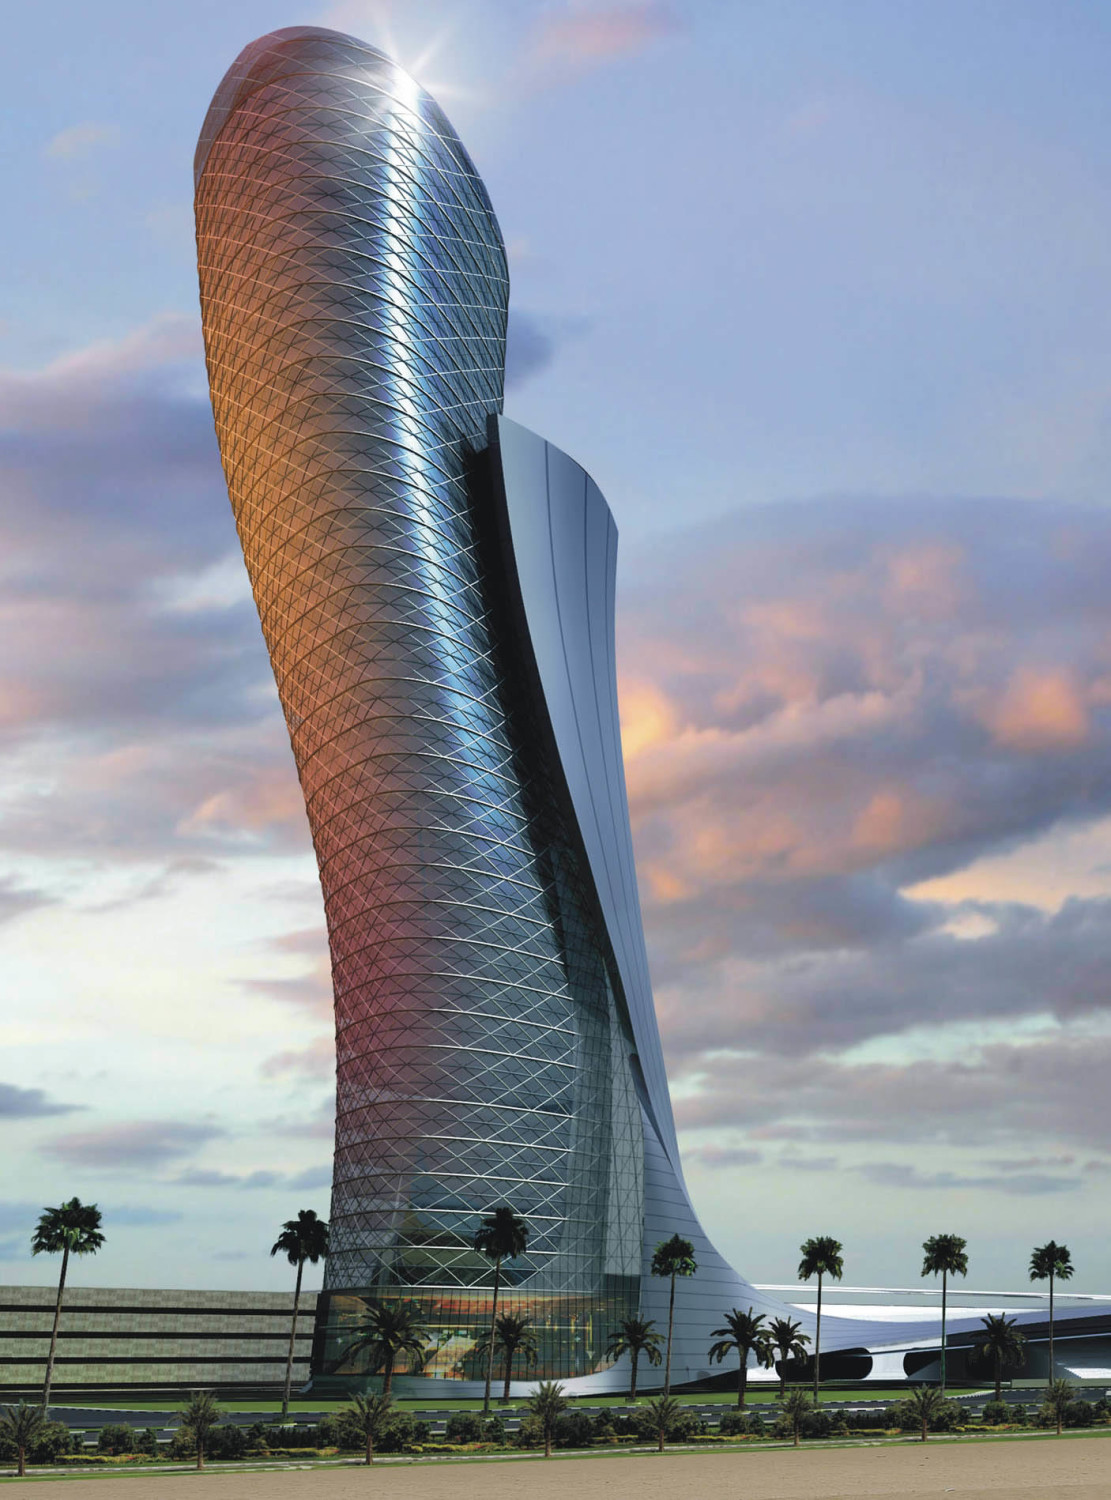 The Capital Gate Tower (Sumber: www.rmjm.com)